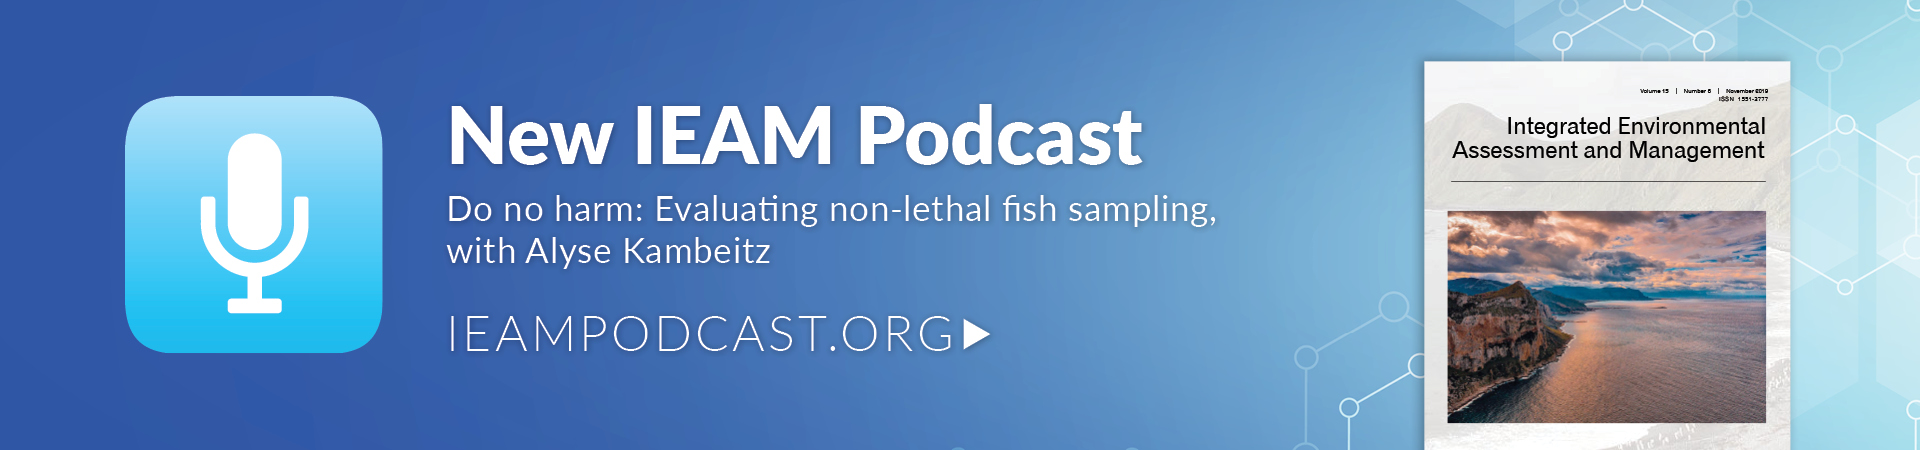 Listen to the latest IEAM Podcast